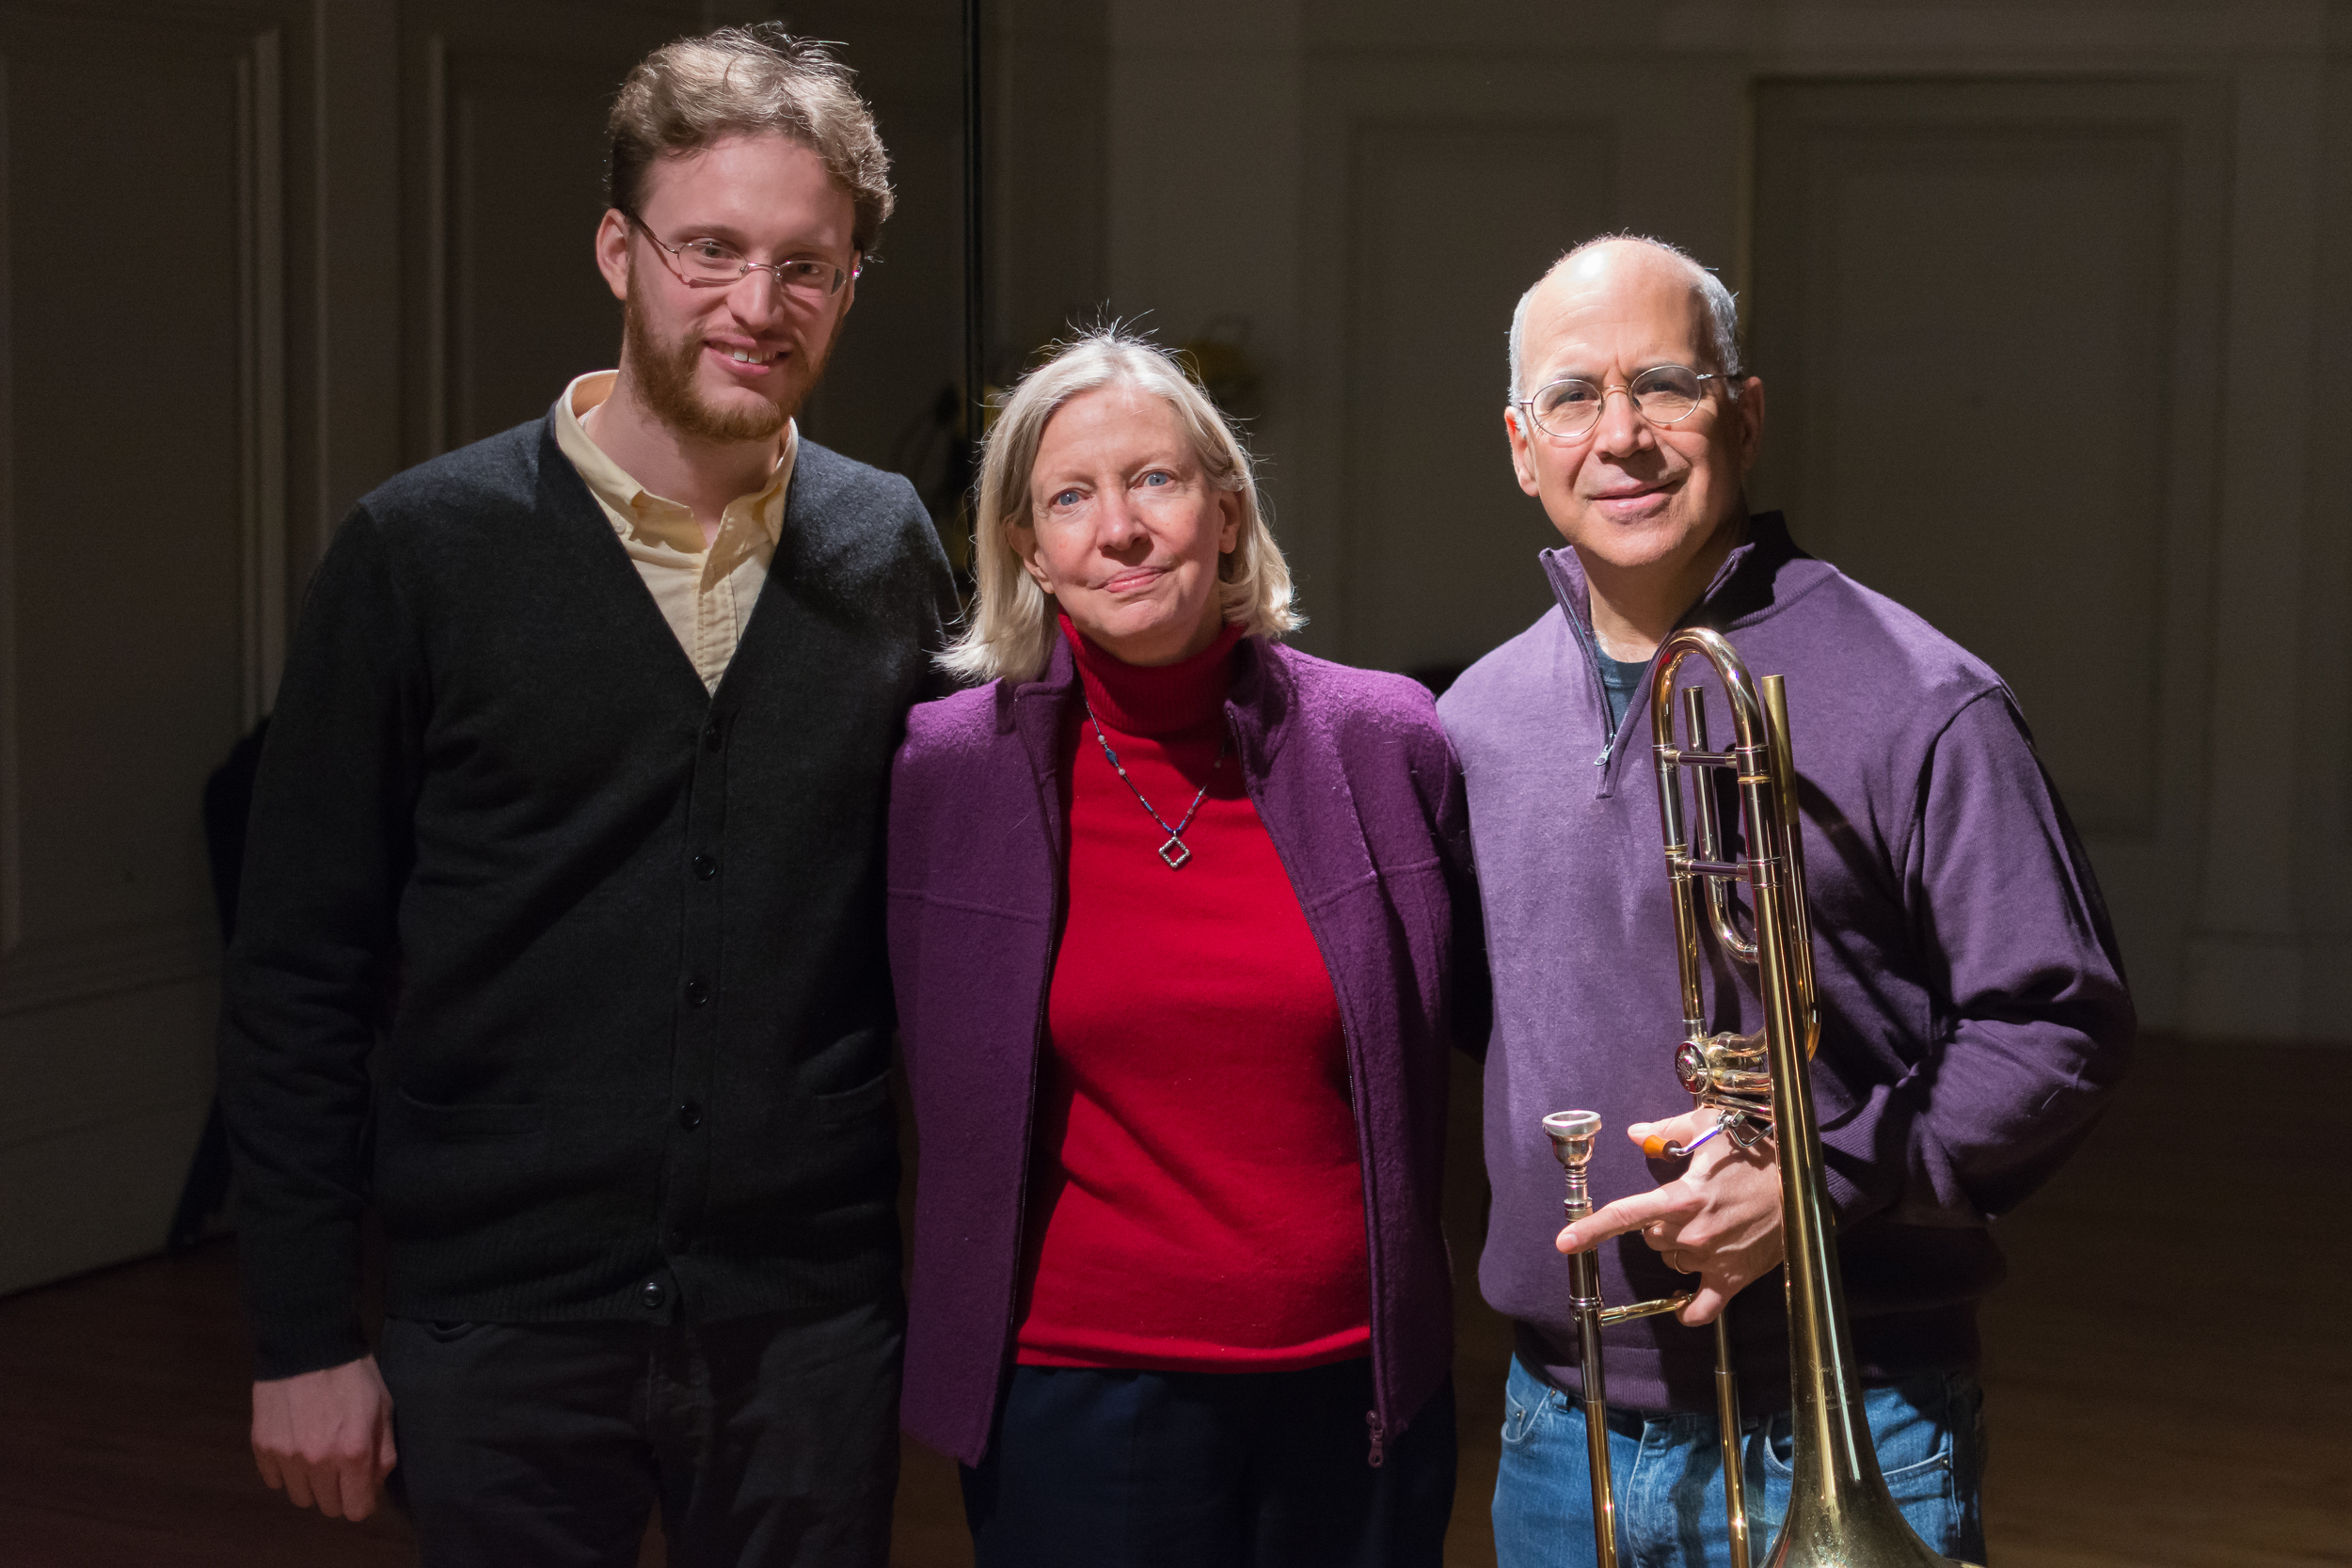 """Eric Nathan with Judith Sherman (producer) and Joseph Alessi (trombone) at the recording session of """"As Above, So Below"""" (Photo credit: John Whitaker Photography)"""